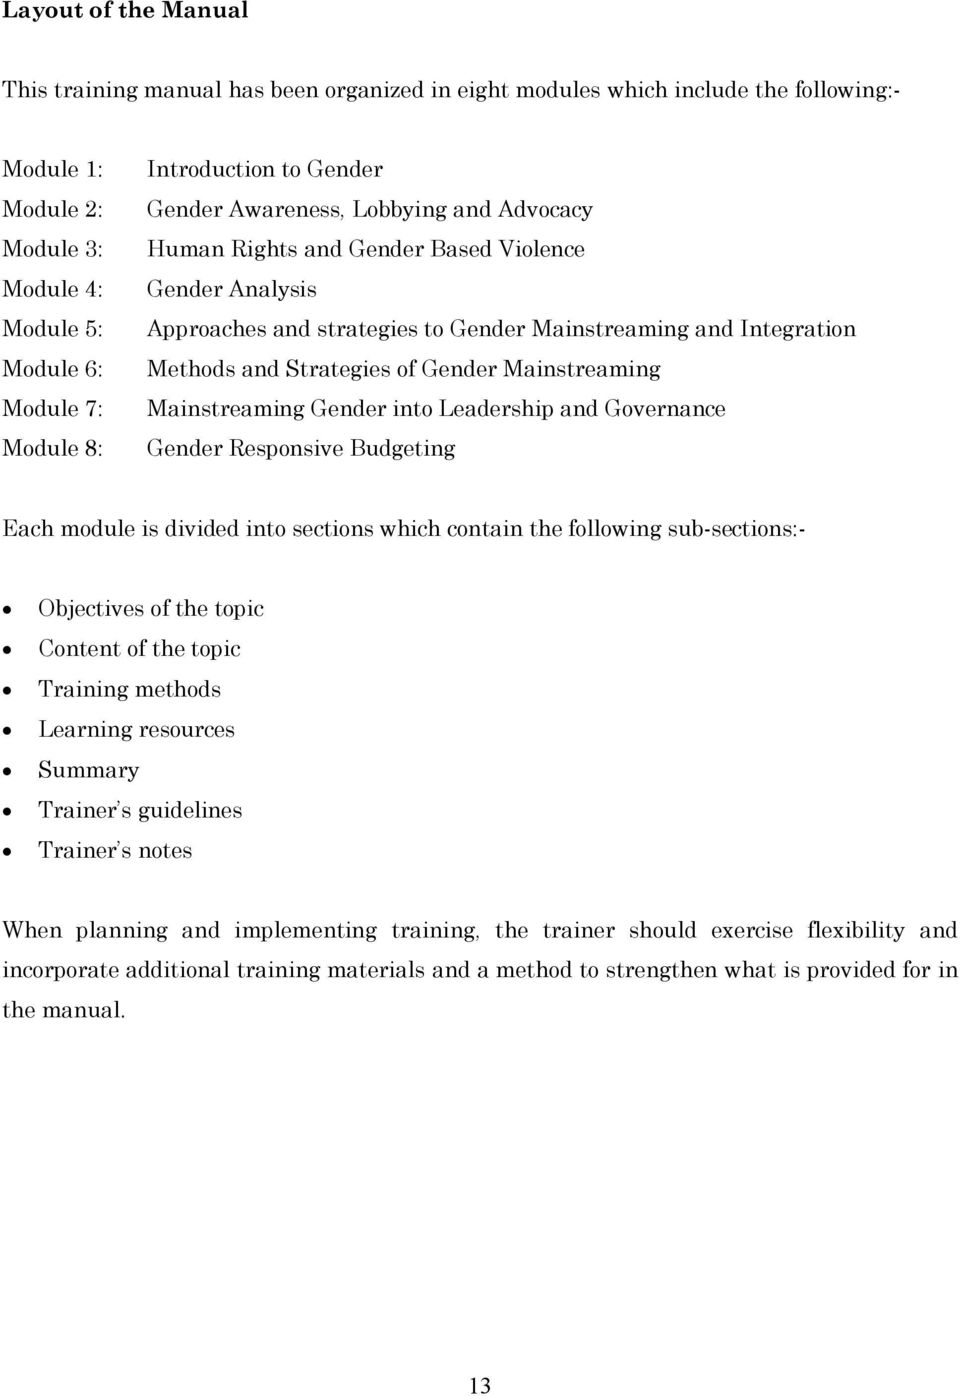 Strategies of Gender Mainstreaming Mainstreaming Gender into Leadership and Governance Gender Responsive Budgeting Each module is divided into sections which contain the following sub-sections:-